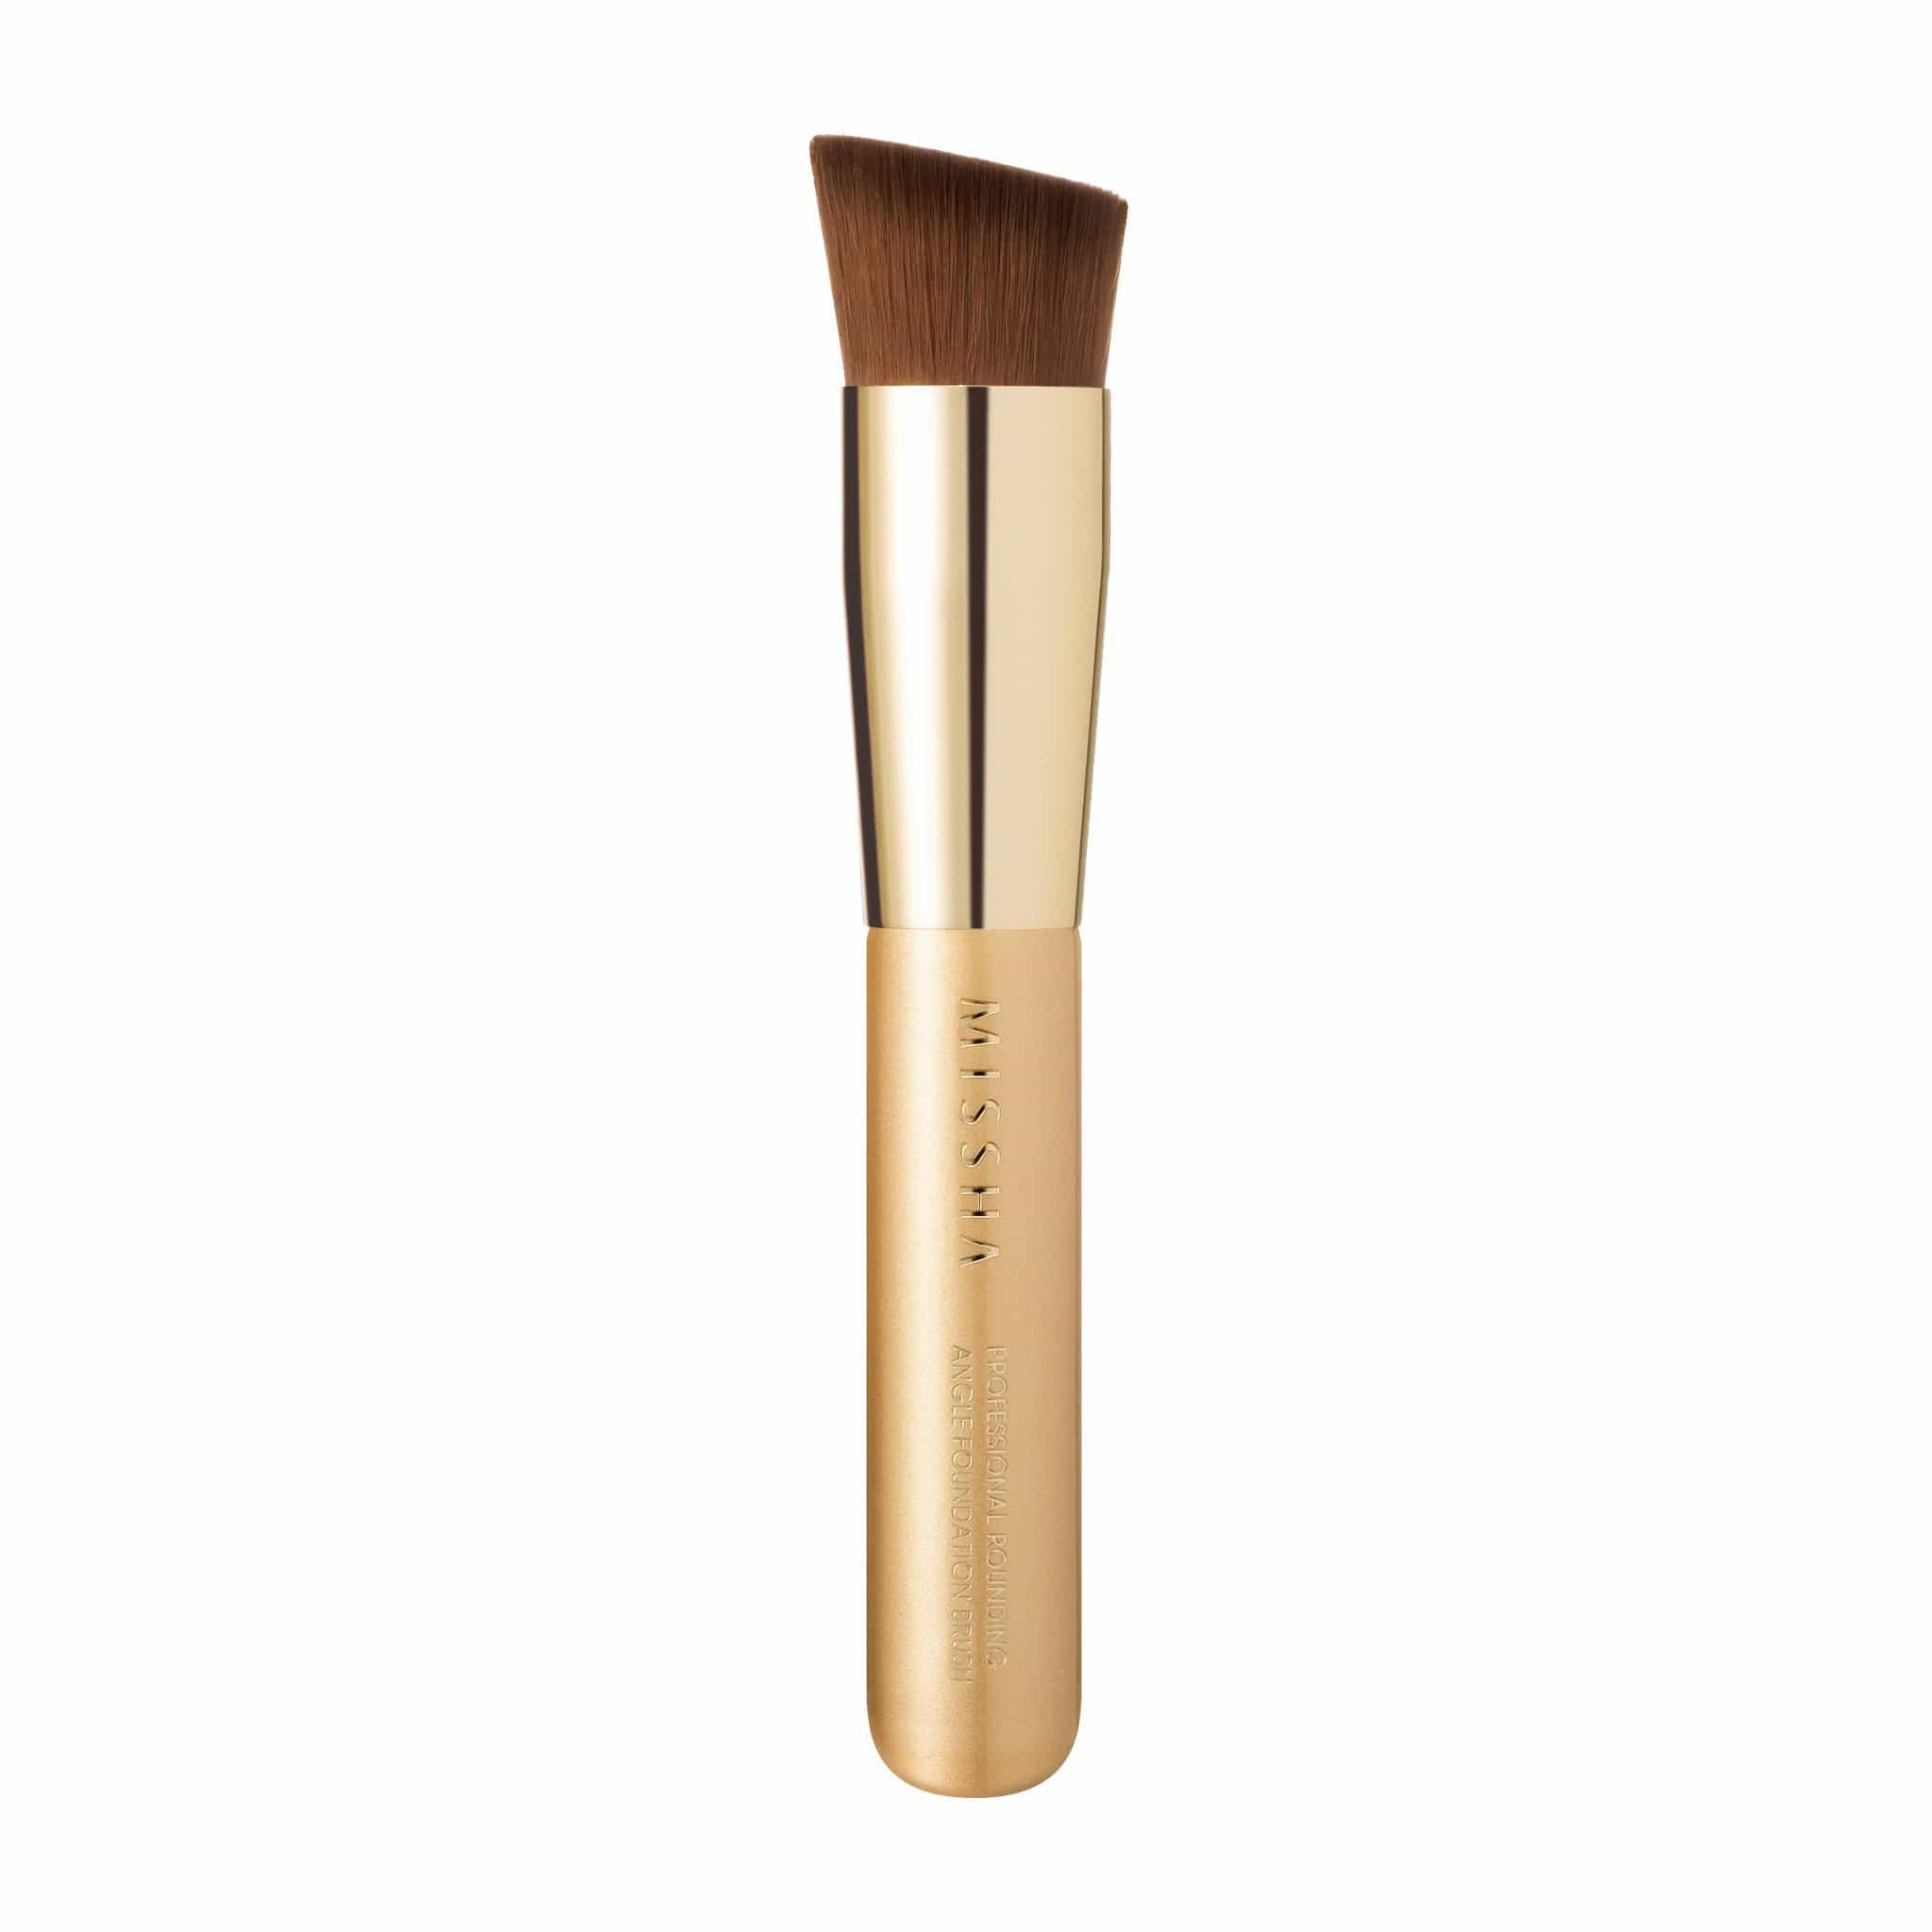 PROFESSIONAL ROUNDING ANGLE FOUNDATION BRUSH - MISSHA